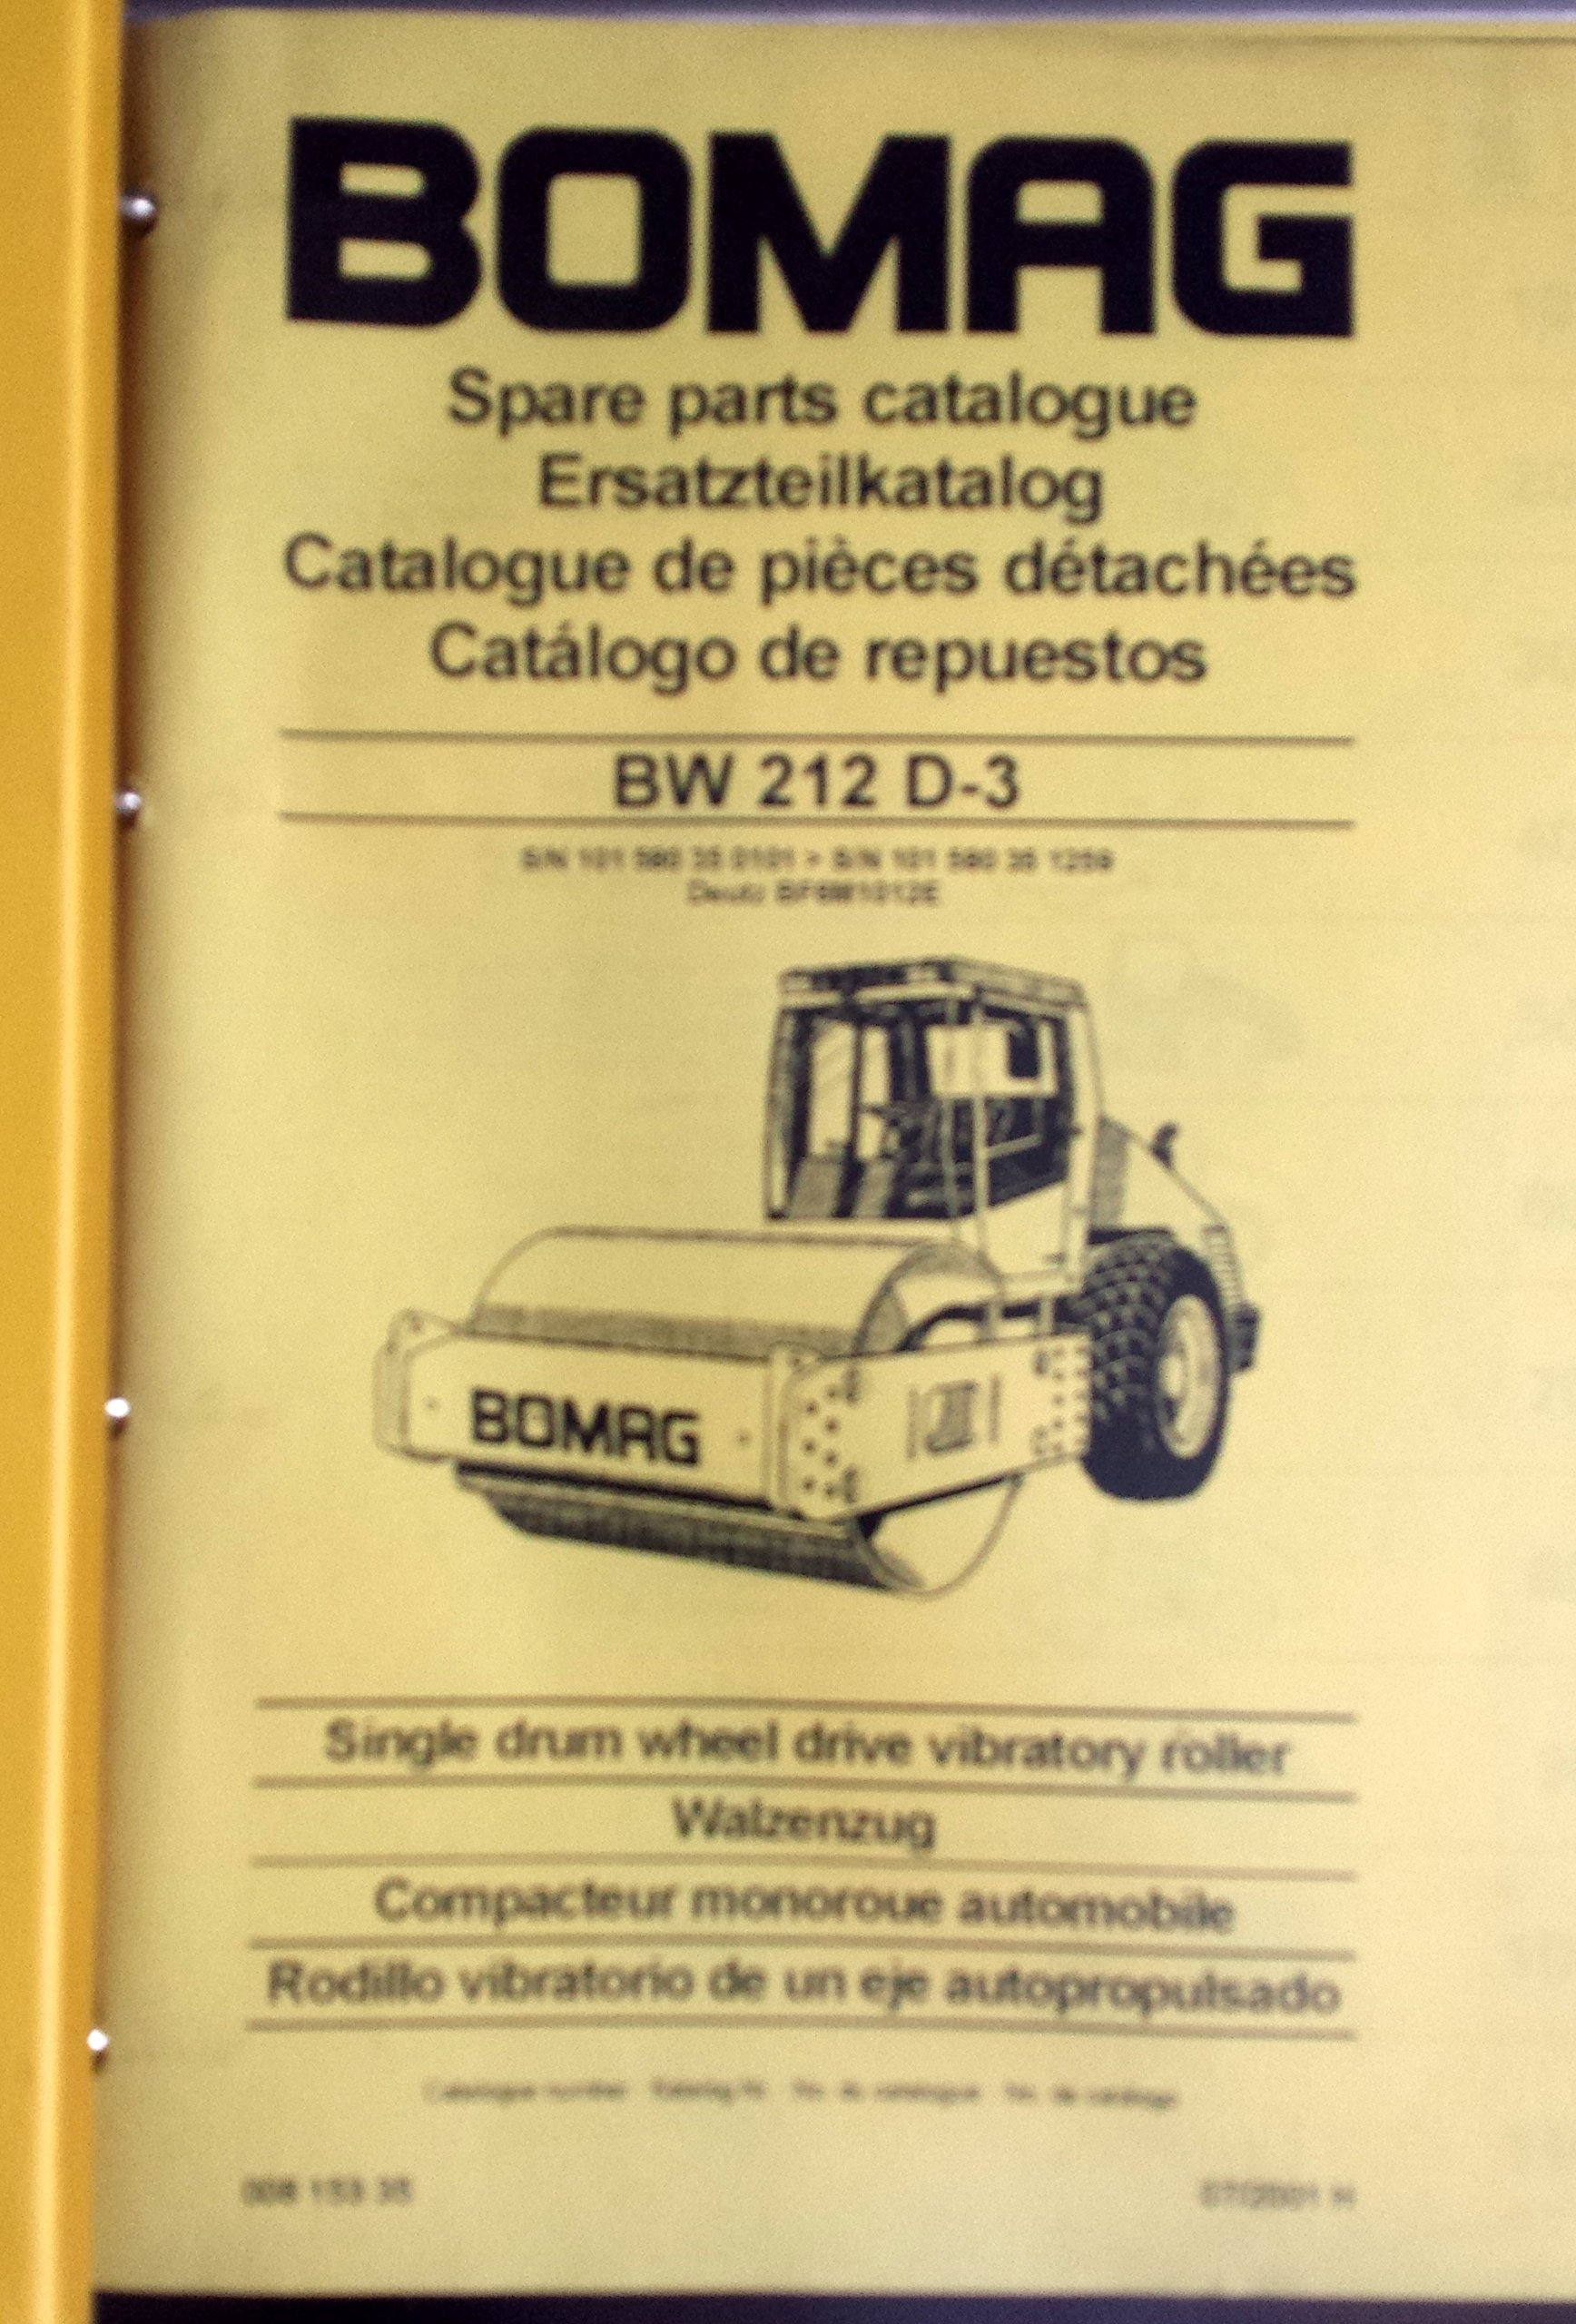 Bomag Spare Parts Catalogue BW 212 D-3: Bomag: 0730347164348: Amazon.com:  Books